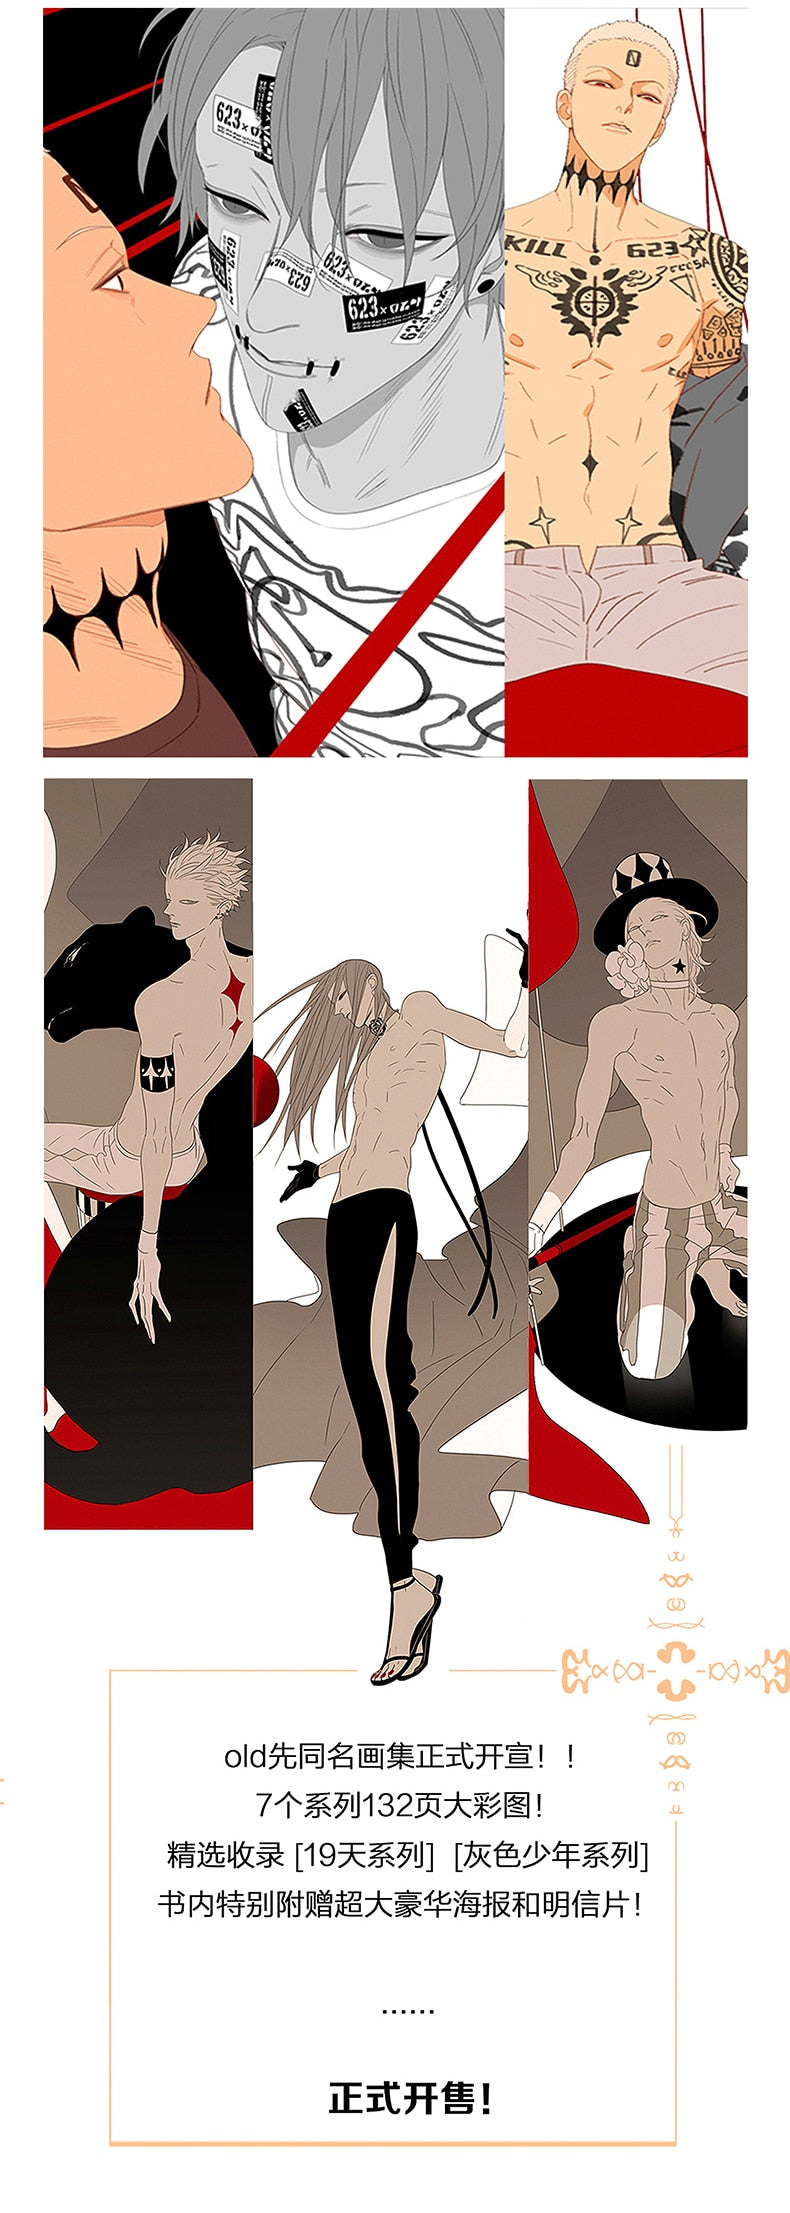 New Old Xian Art Collection Book